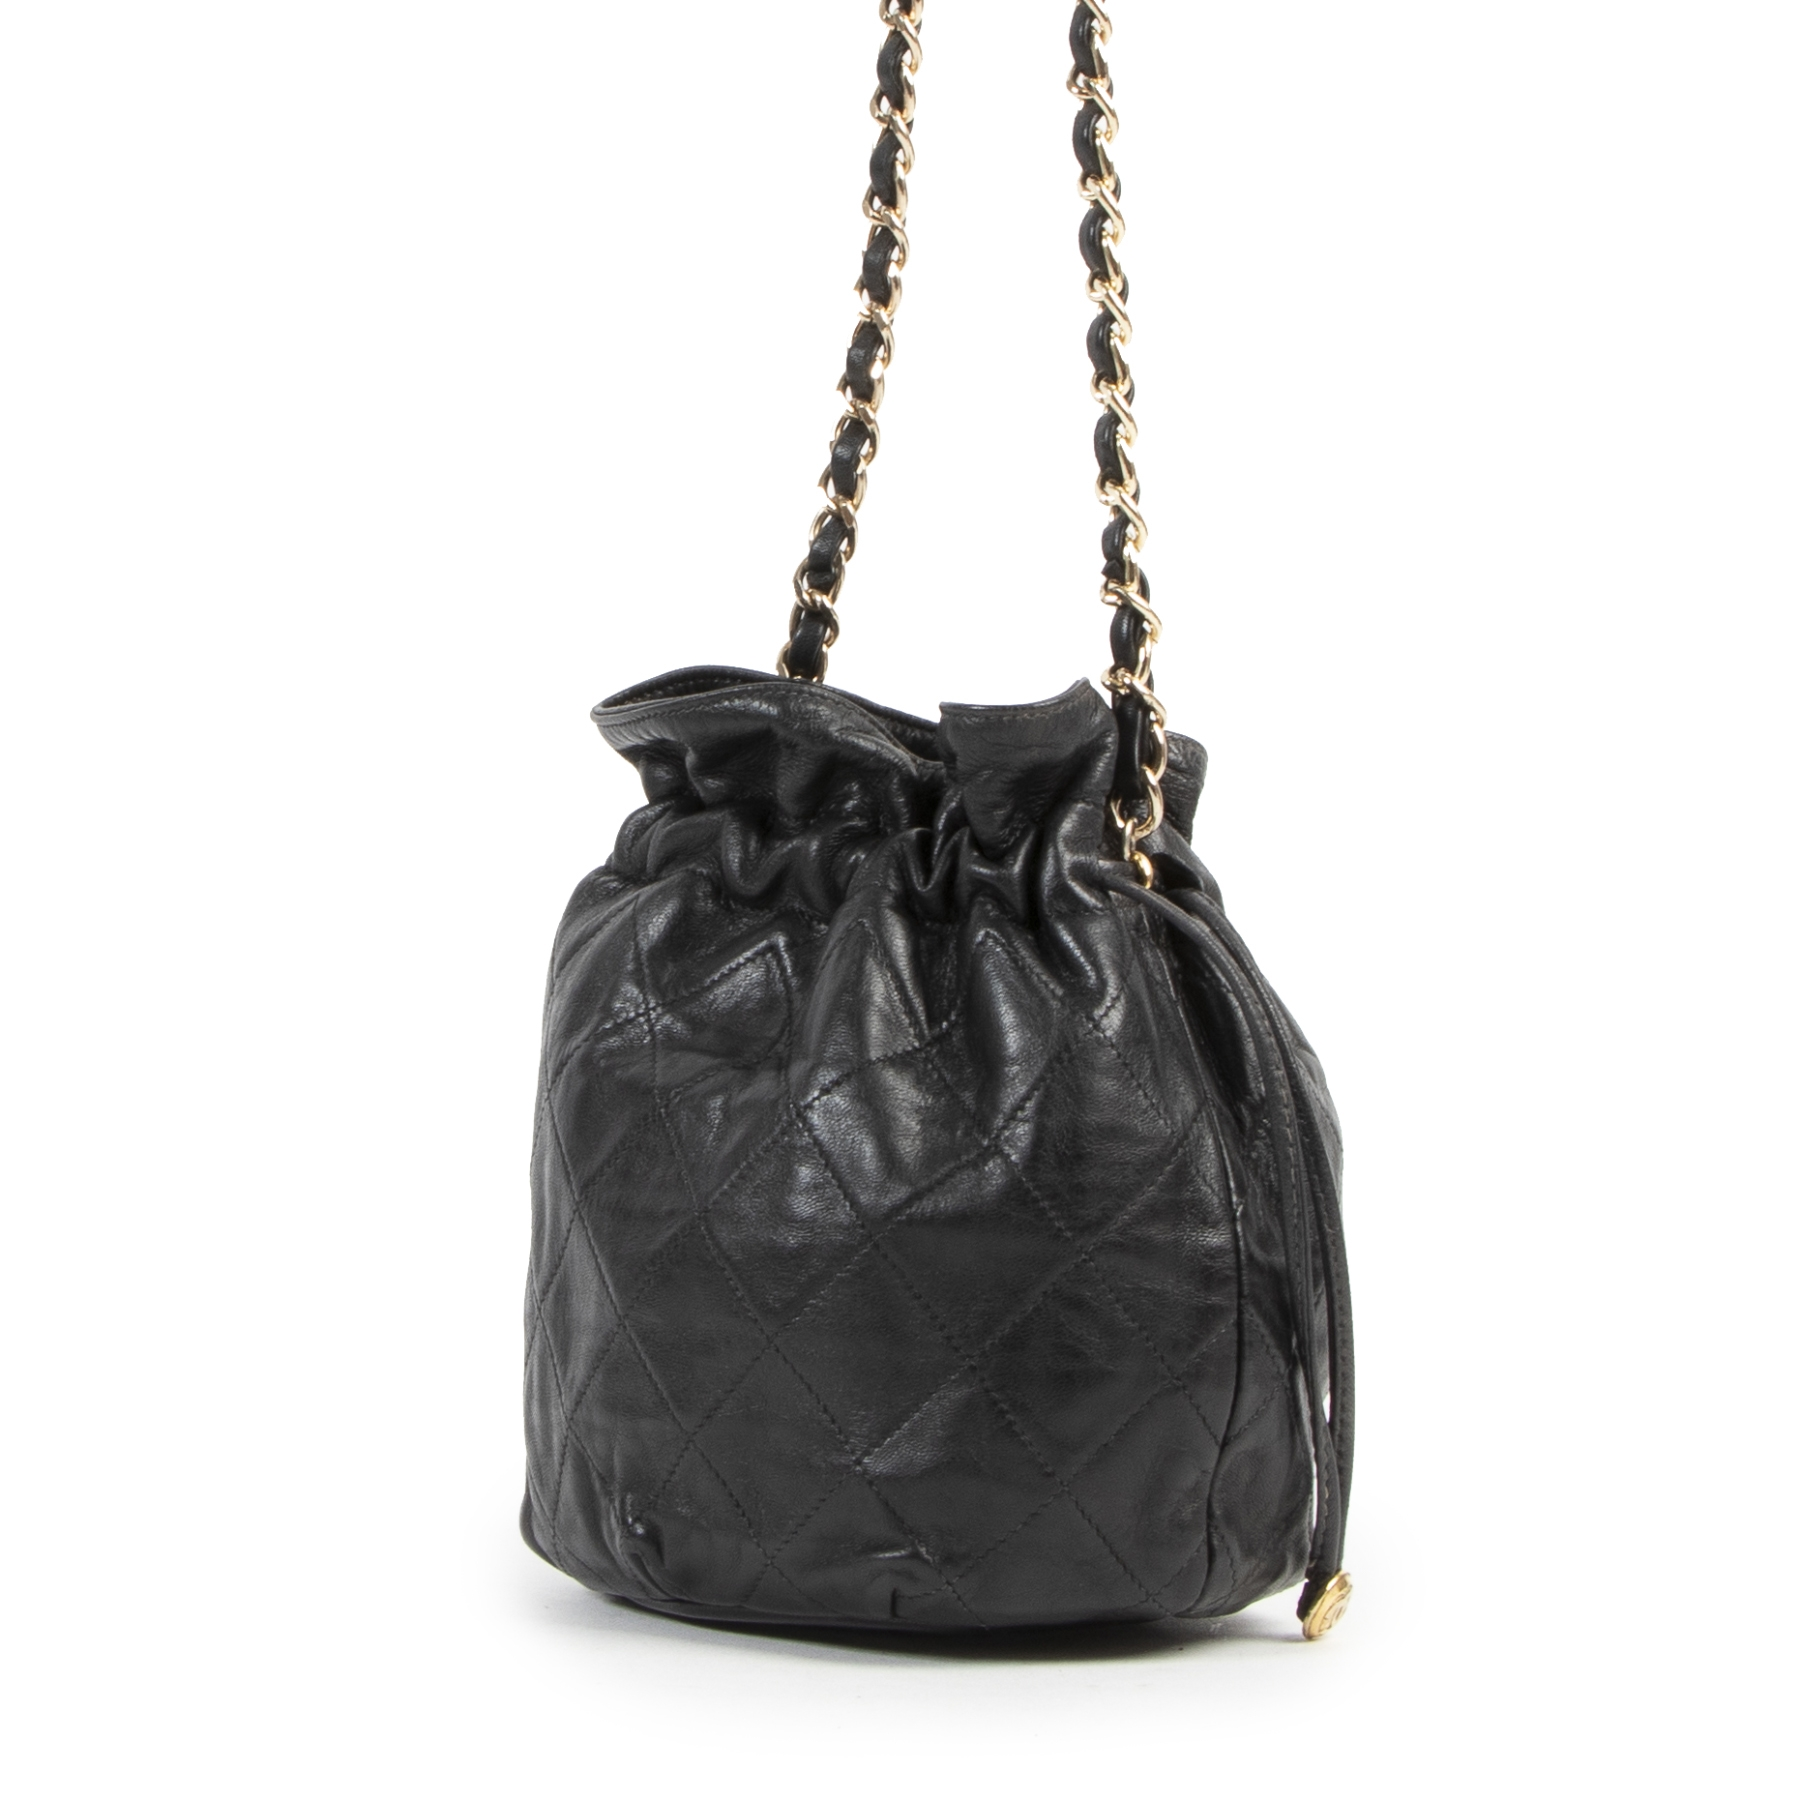 Buy this authentic second-hand vintage Chanel Black Leather Quilted Bucket Bag at online webshop LabelLOV. Safe and secure shopping. Koop deze authentieke tweedehands vintage Chanel Black Leather Quilted Bucket Bag bij online webshop LabelLOV.